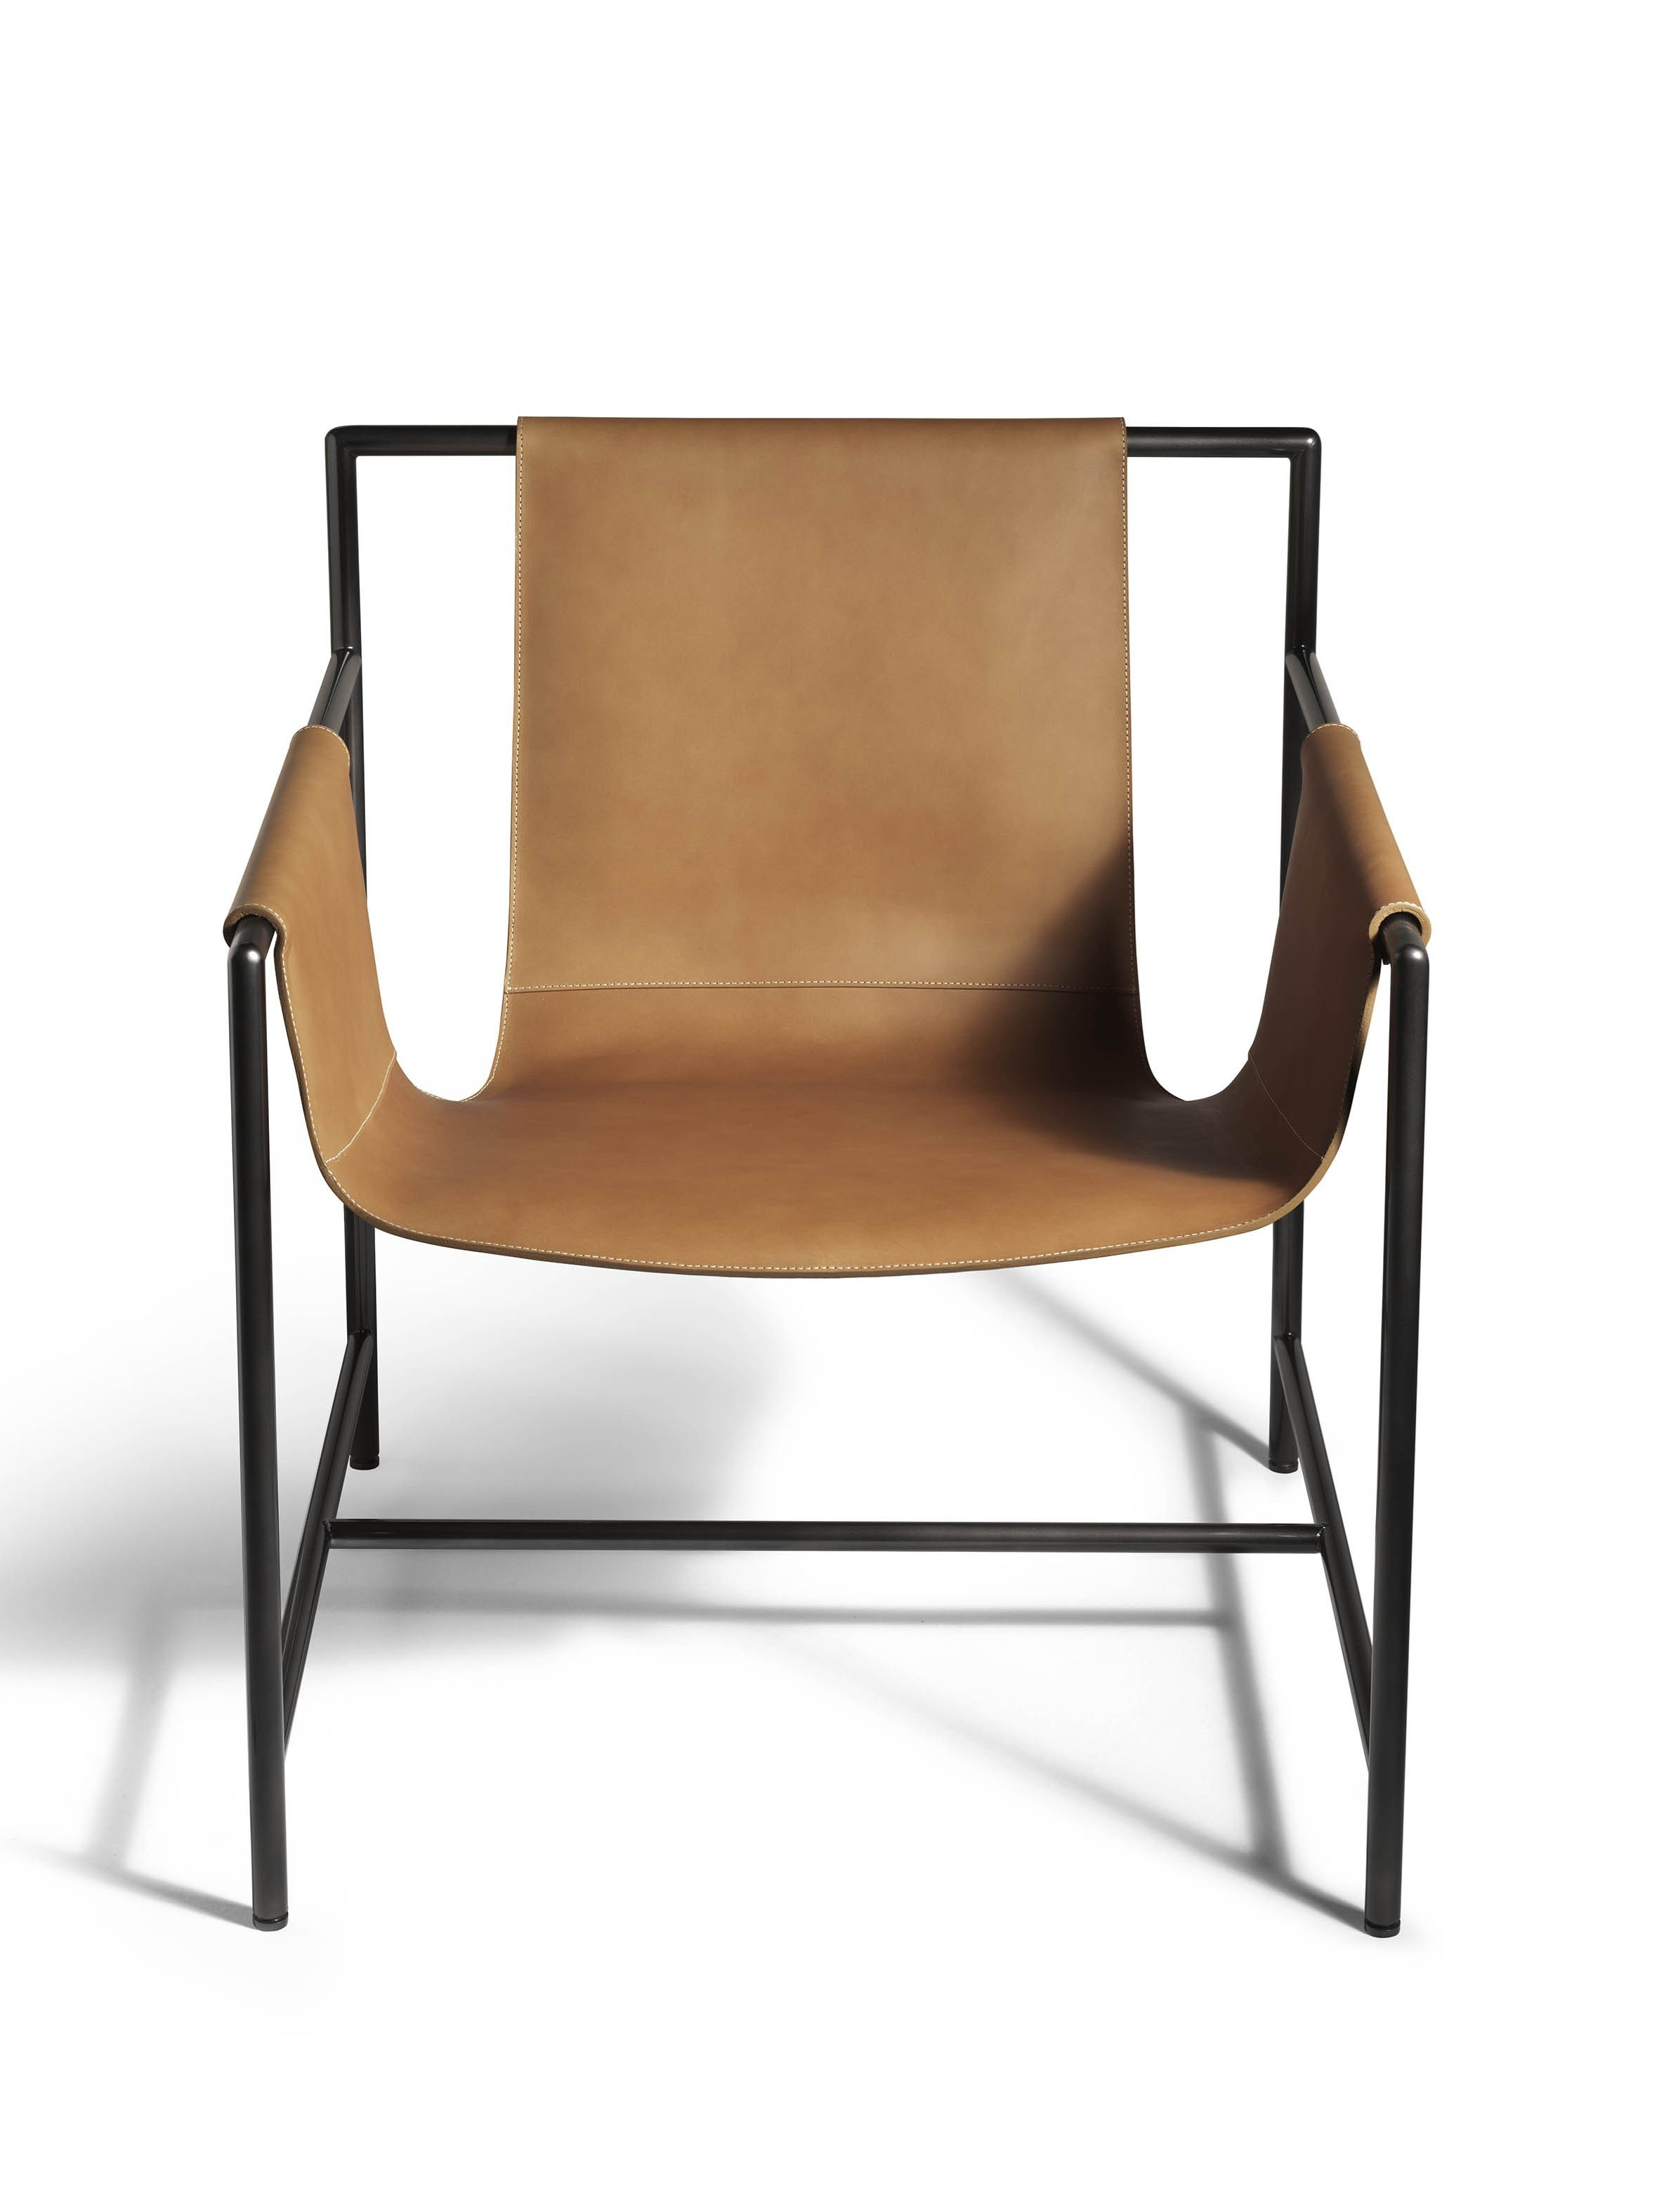 Tanned leather chair ming 39 s heart by poltrona frau design for Chair design leather